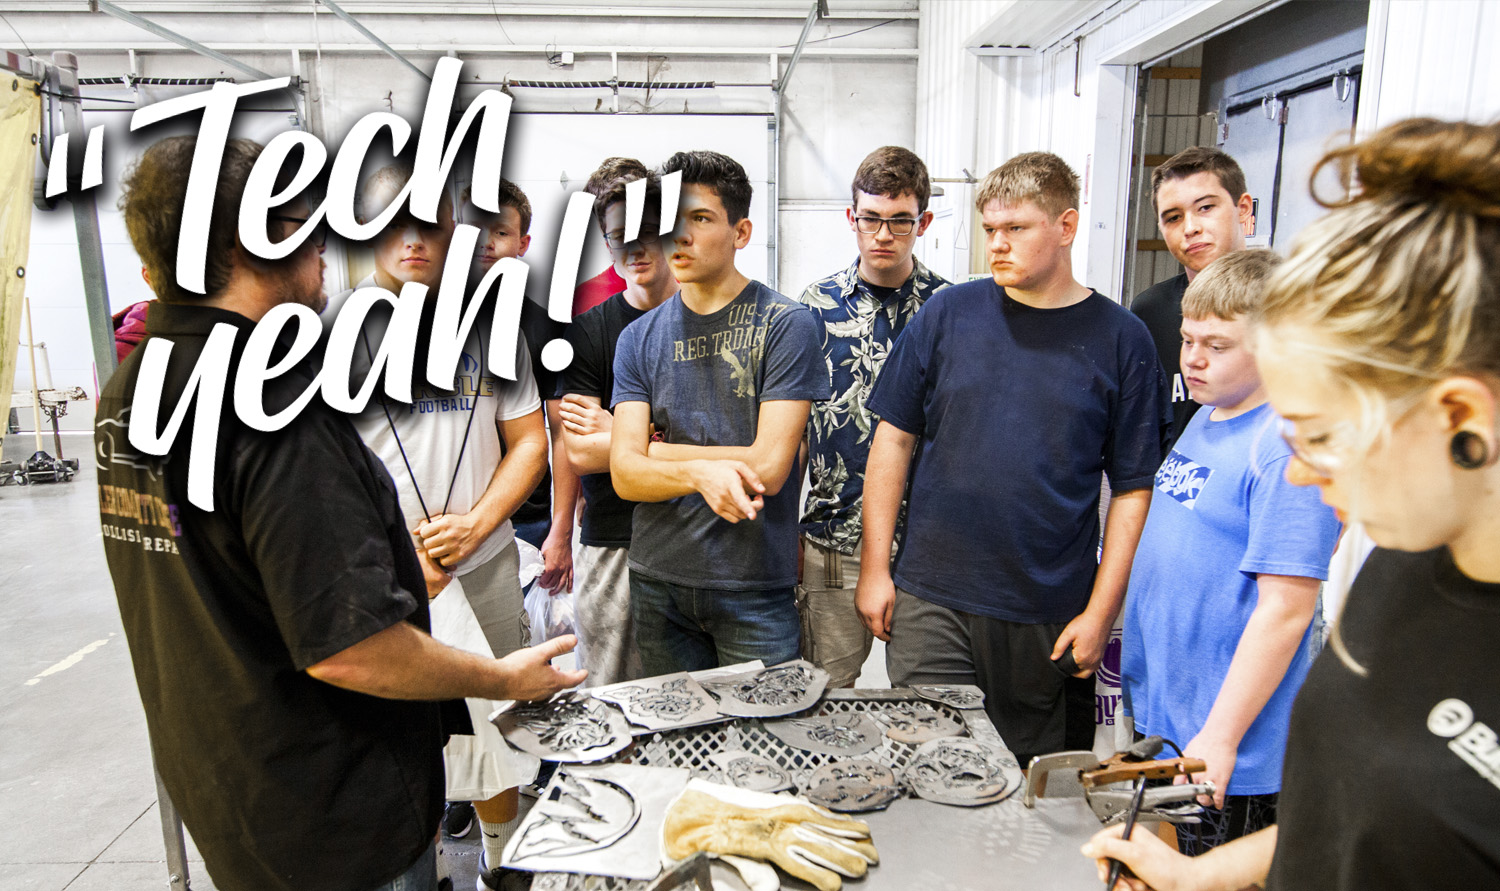 From auto to welding, Butler's technology department can help you train for today's active job market.